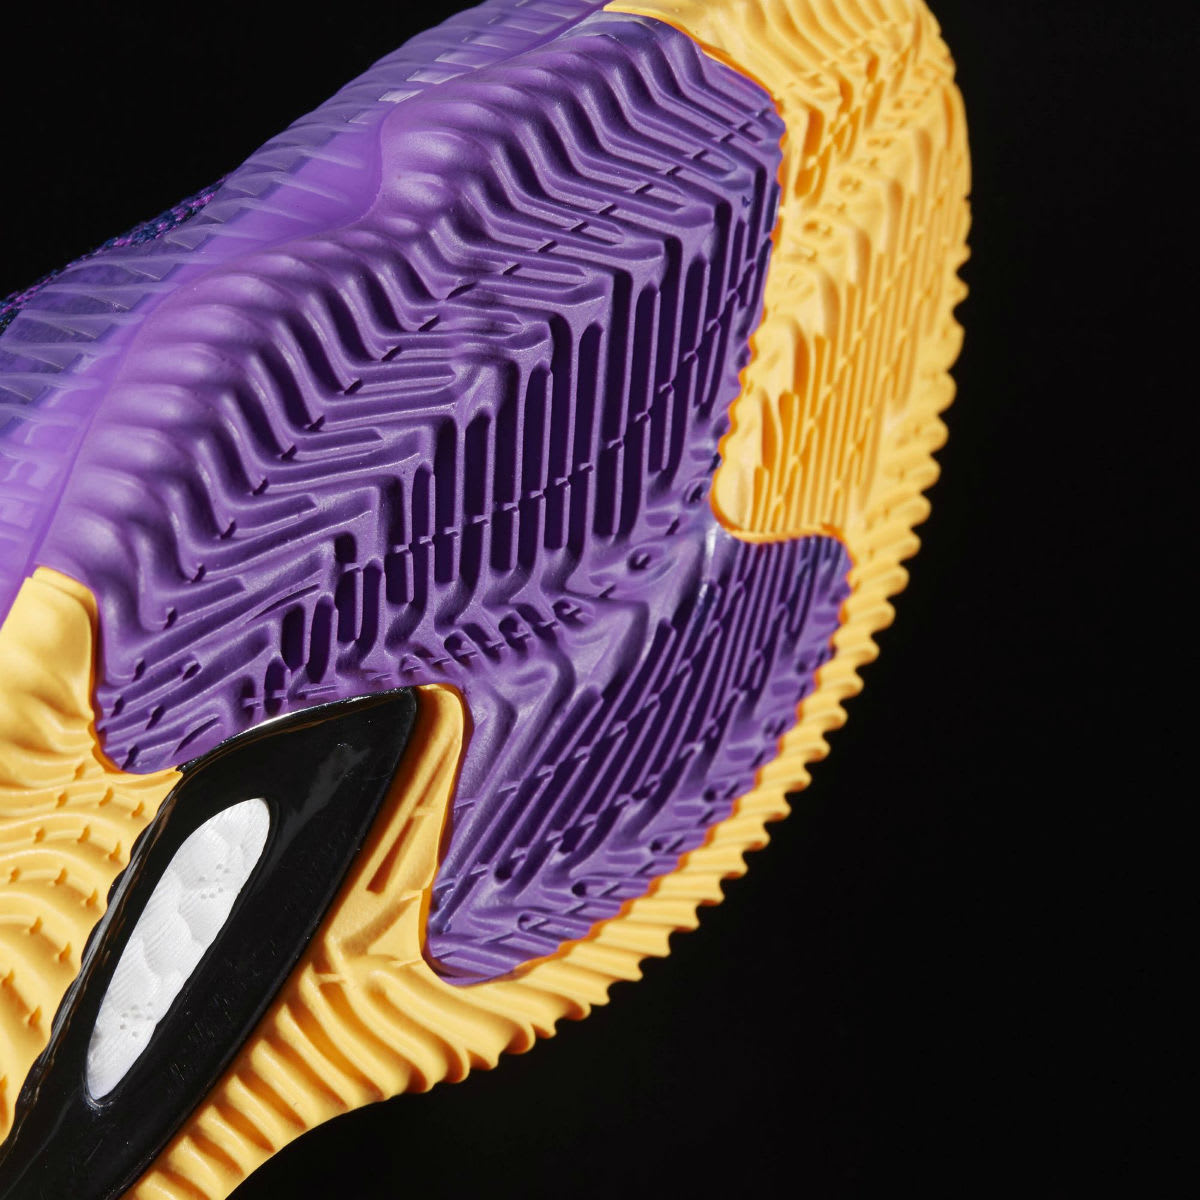 Adidas Crazylight Boost Swaggy P Lakers Outsole BB8175